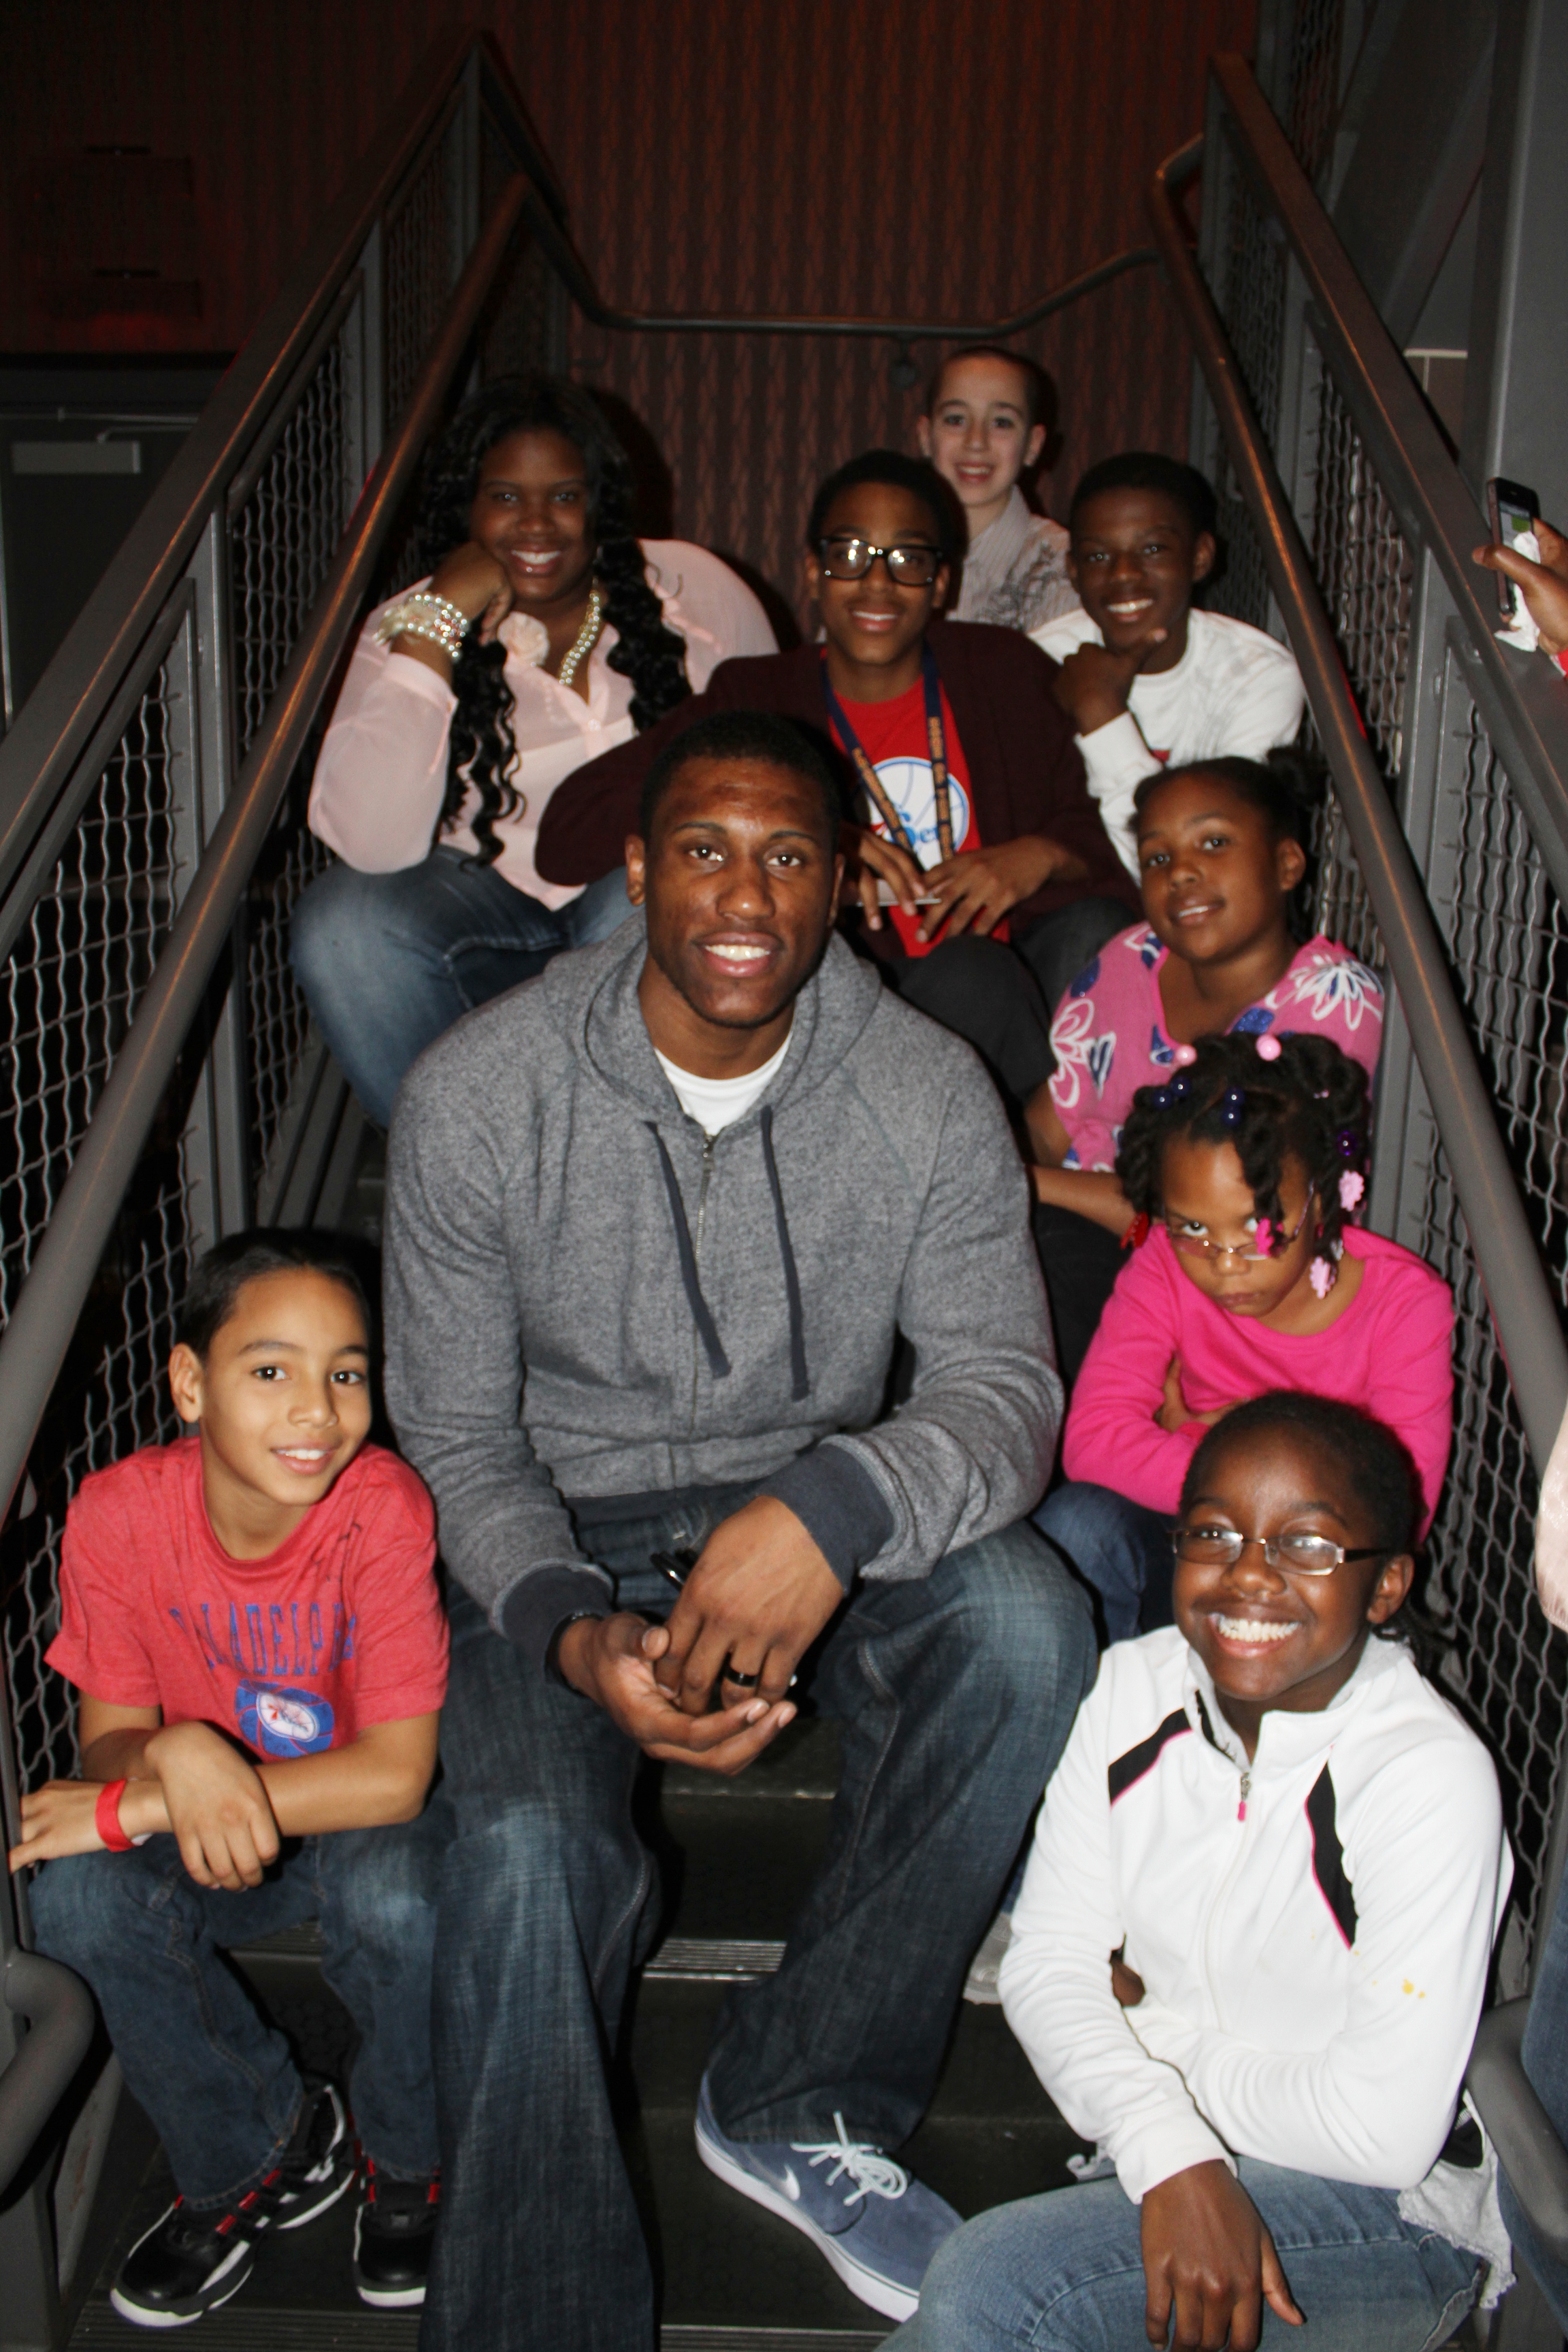 Thad and the kids